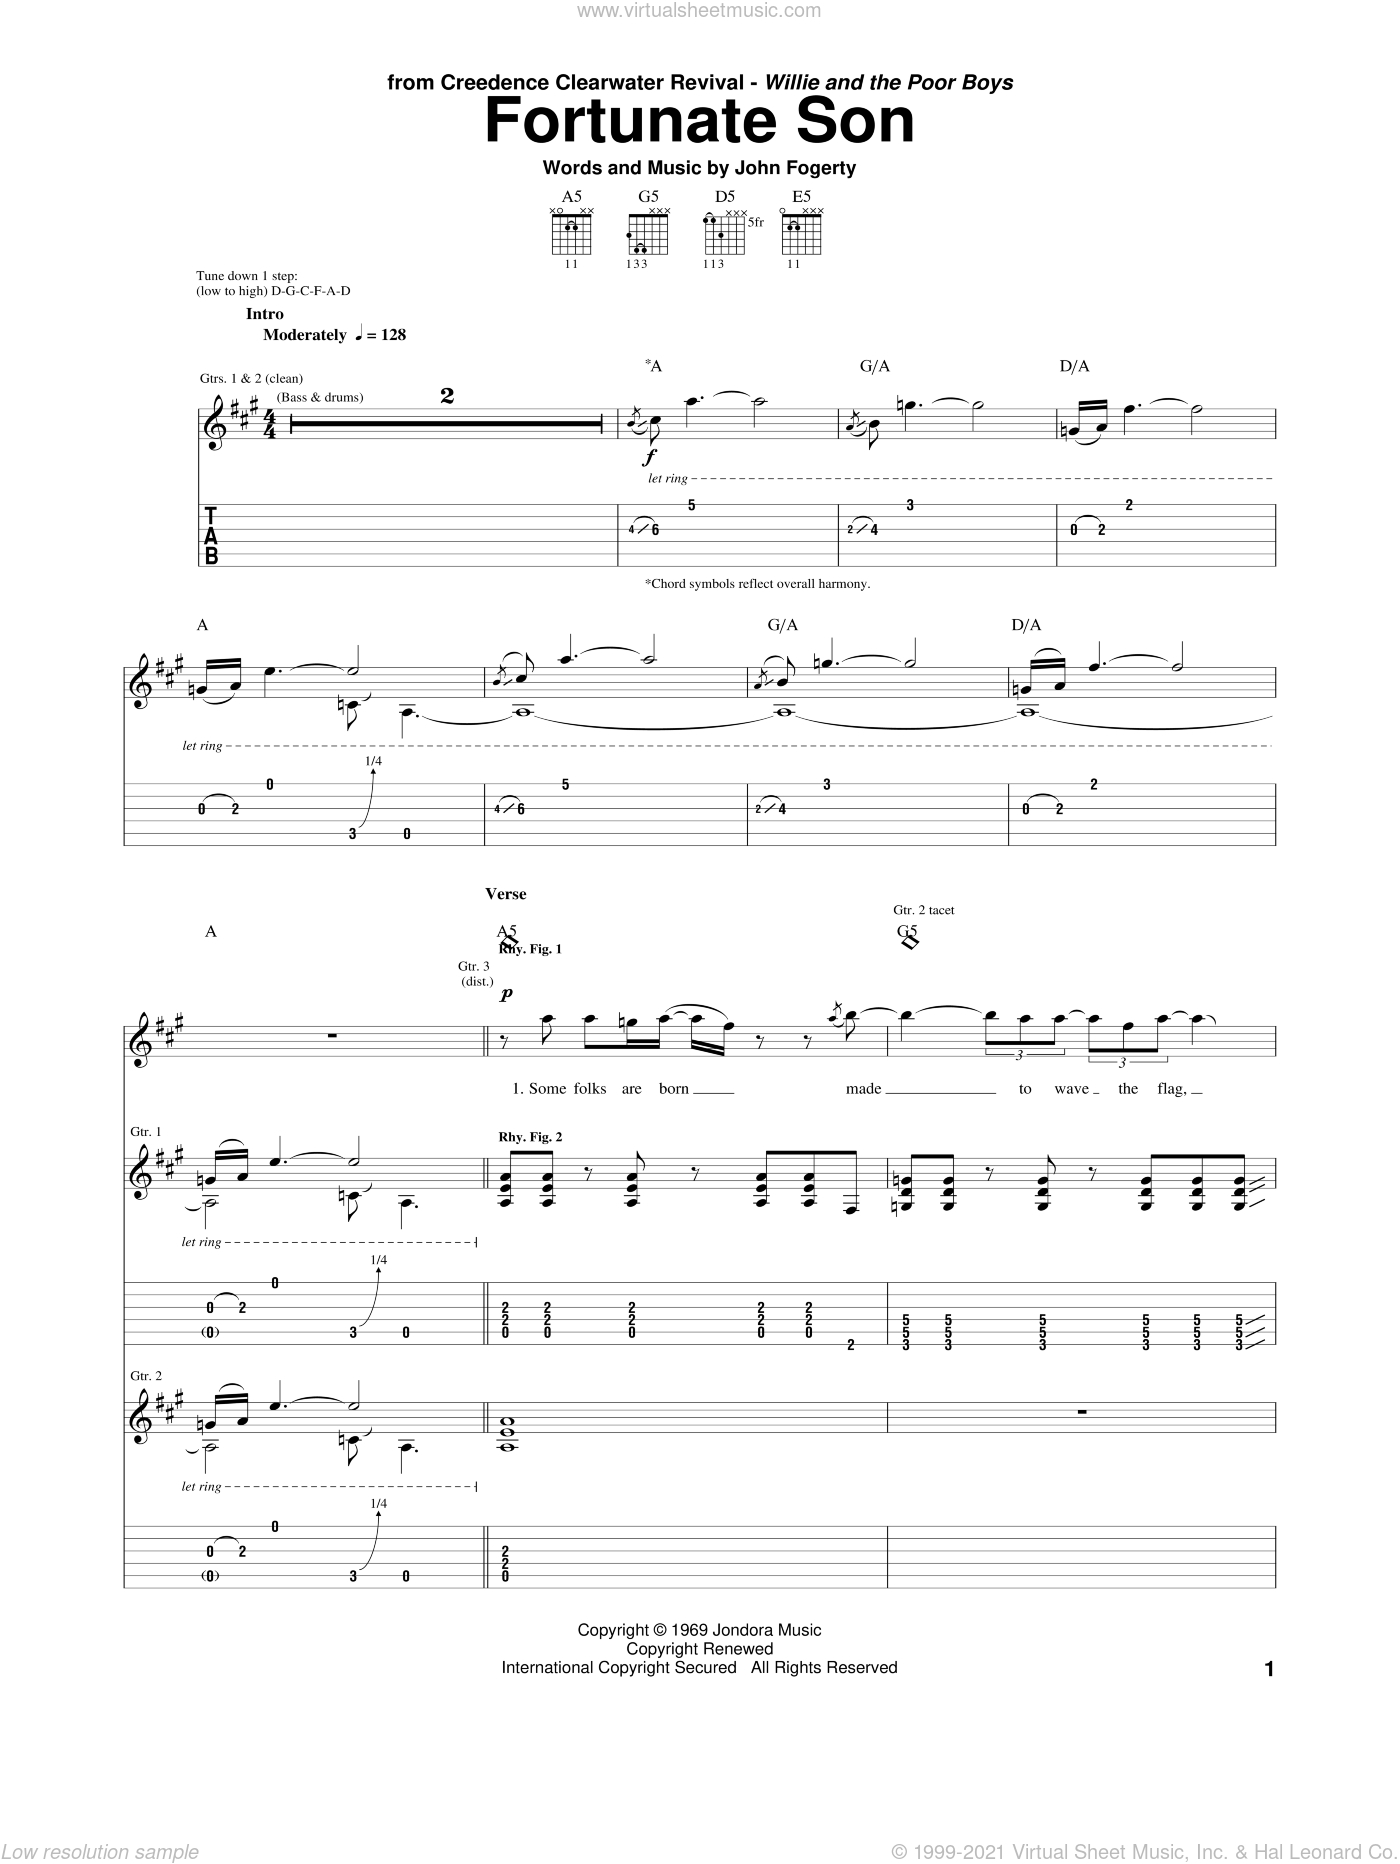 Fortunate Son sheet music for guitar (tablature) by Creedence Clearwater Revival and John Fogerty, intermediate skill level